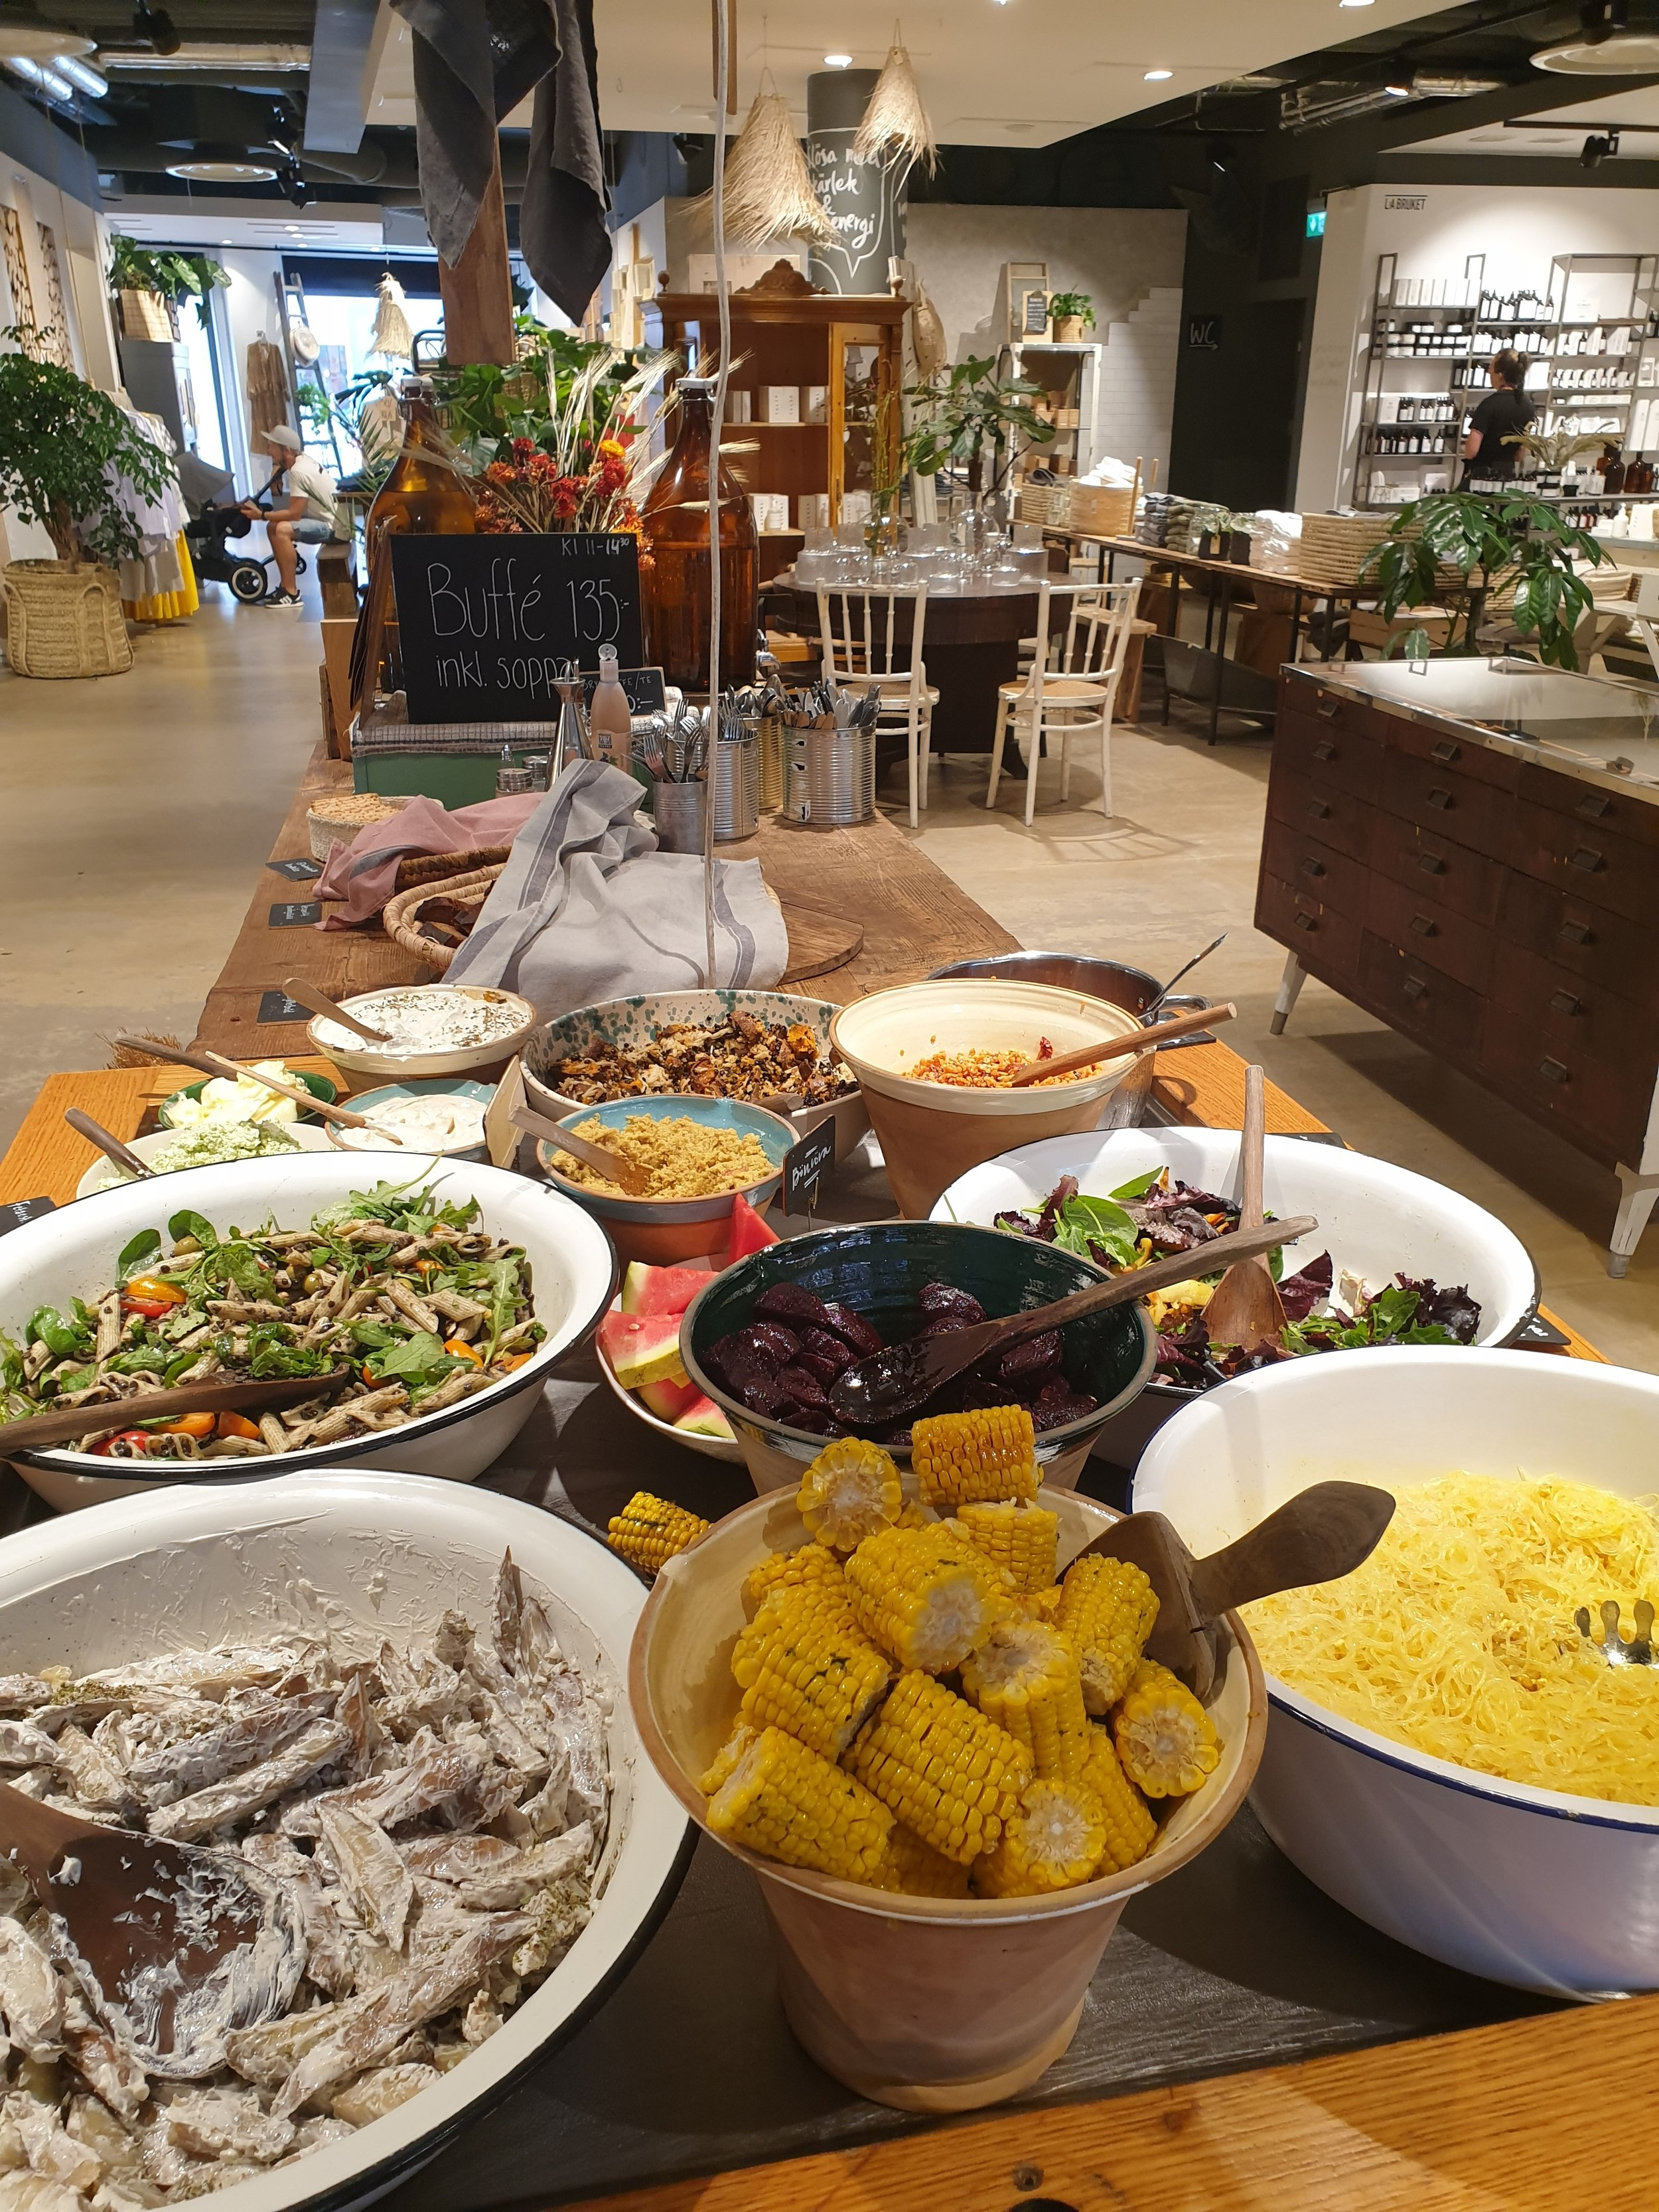 Brunch or breakfast feast will not disappoint you. With its great location, In the centre of Malmö.